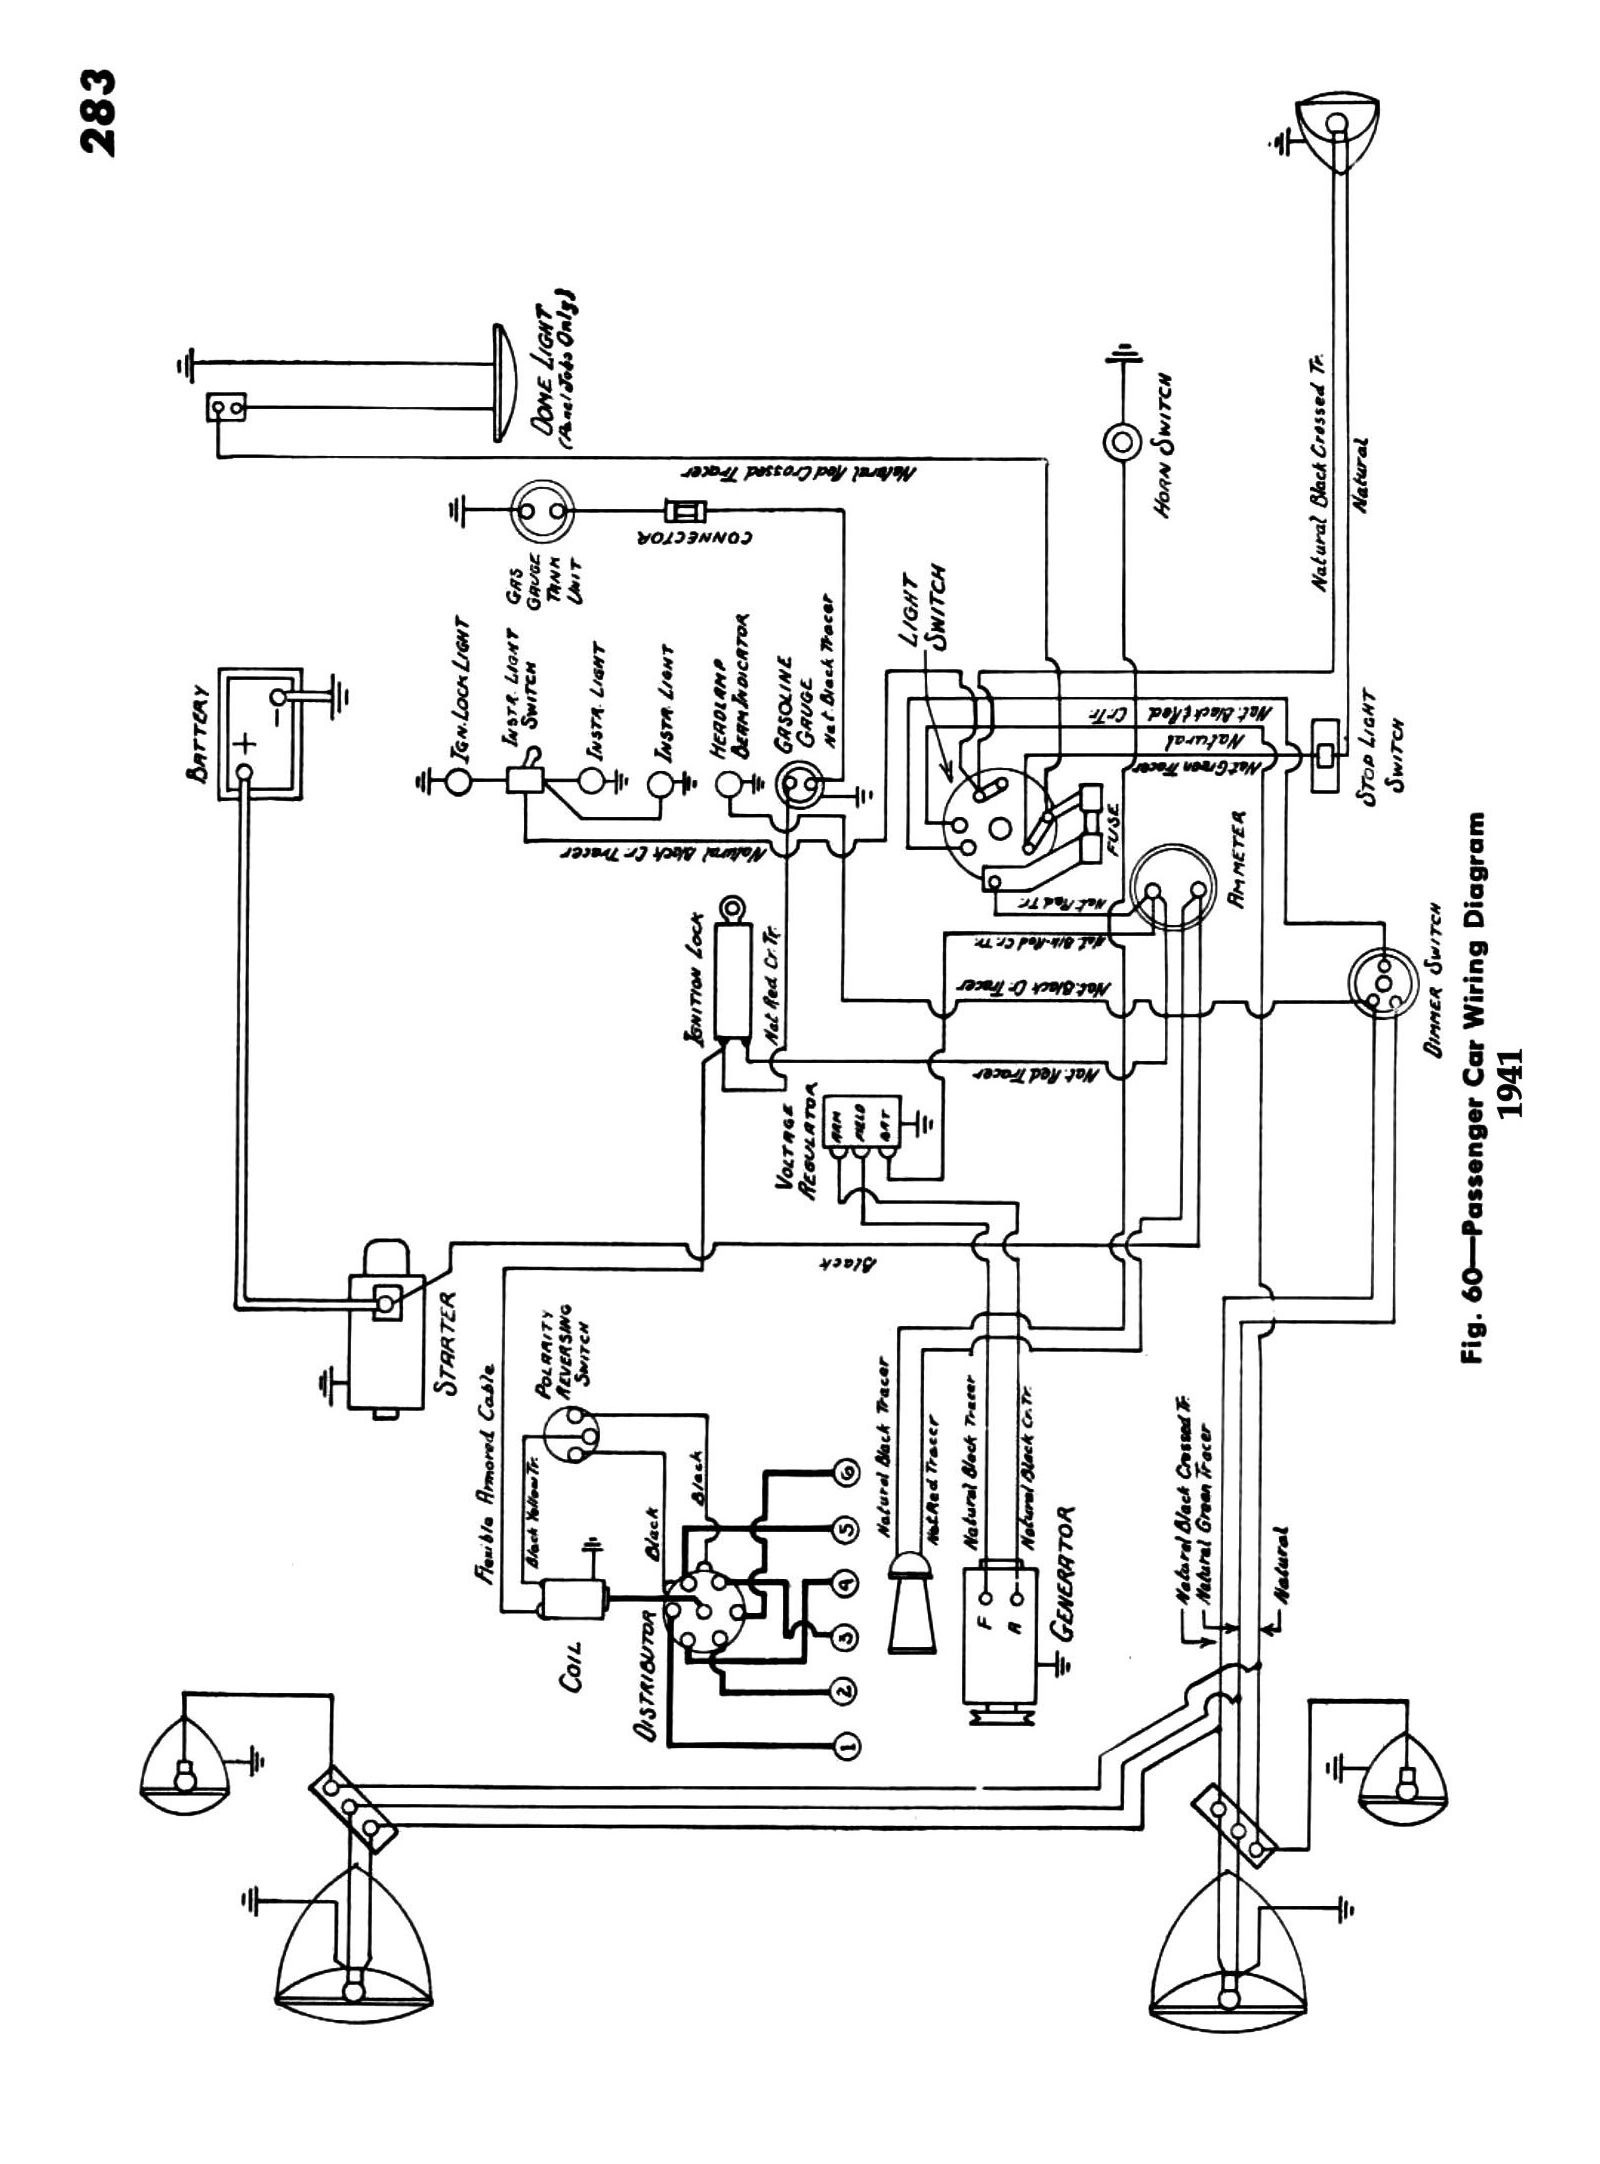 41csm283 chevy wiring diagrams 1953 Ford Car Wiring Diagram at crackthecode.co